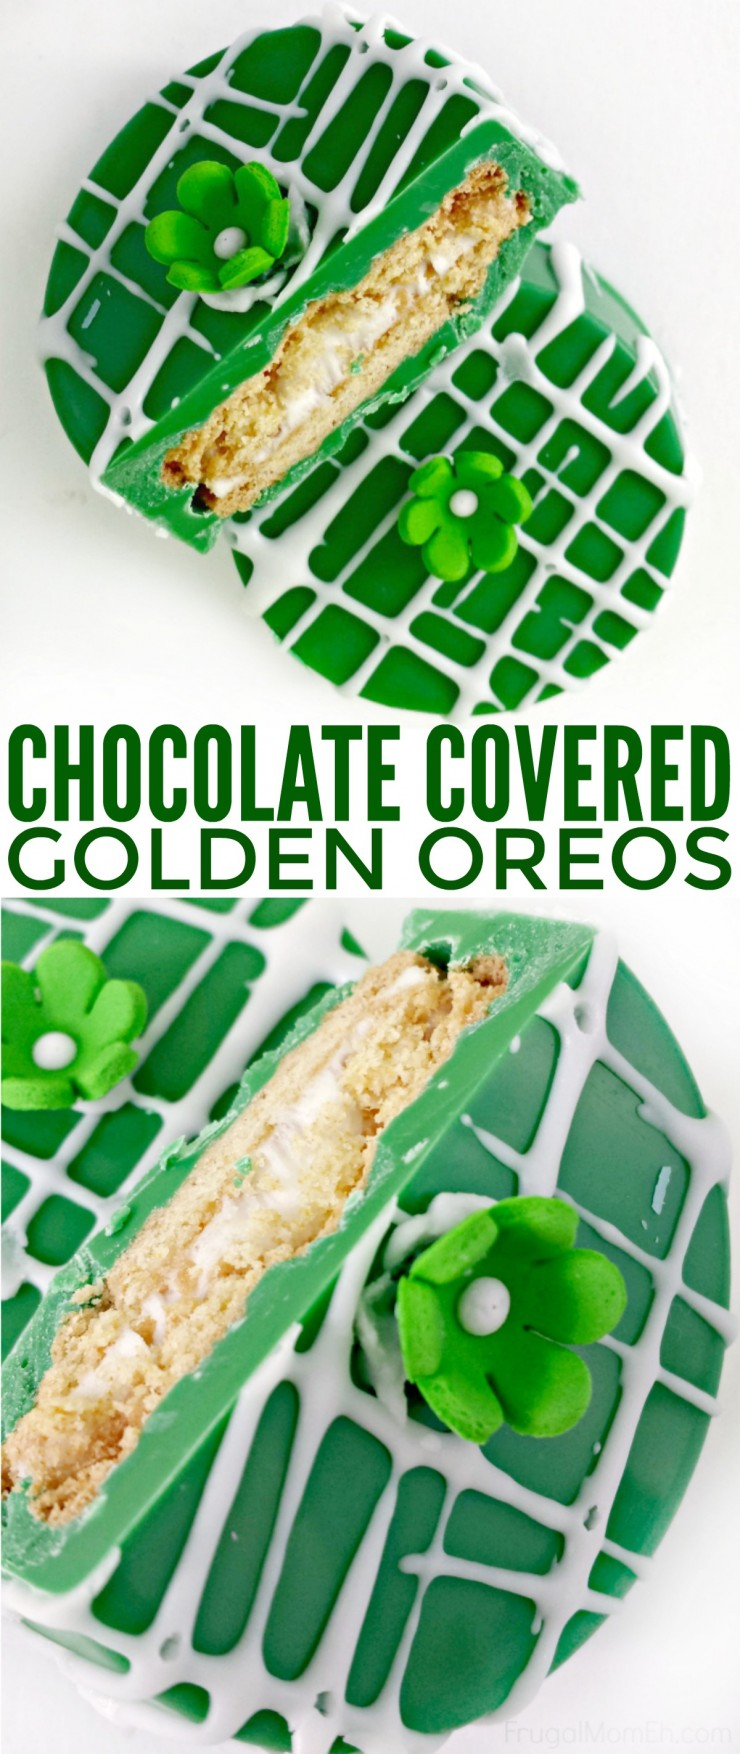 Sometimes it's super nice to have festive treats on hand, such as these Chocolate Covered Golden Oreos for St. Patrick's Day, that look impressive to guests but are really just fuss free and easy to throw together.